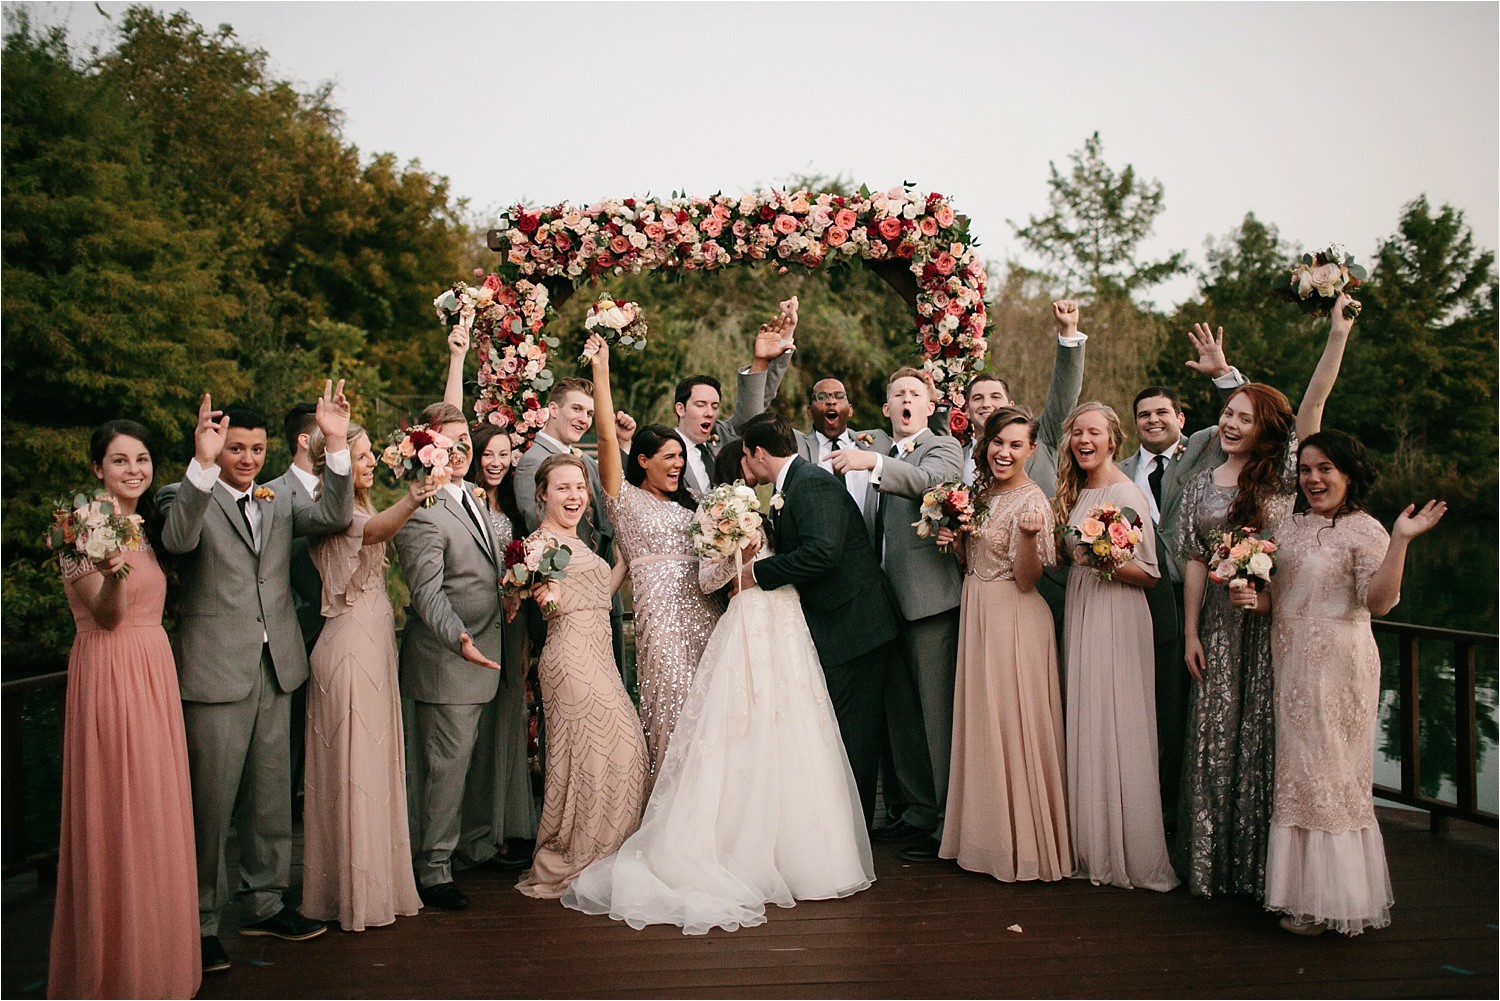 an-elegant-family-ranch-wedding-on-lake-worth-with-burgundy-apricot-and-blush-inspired-decorations-by-north-texas-wedding-photographer-rachel-meagan-photography-_-47